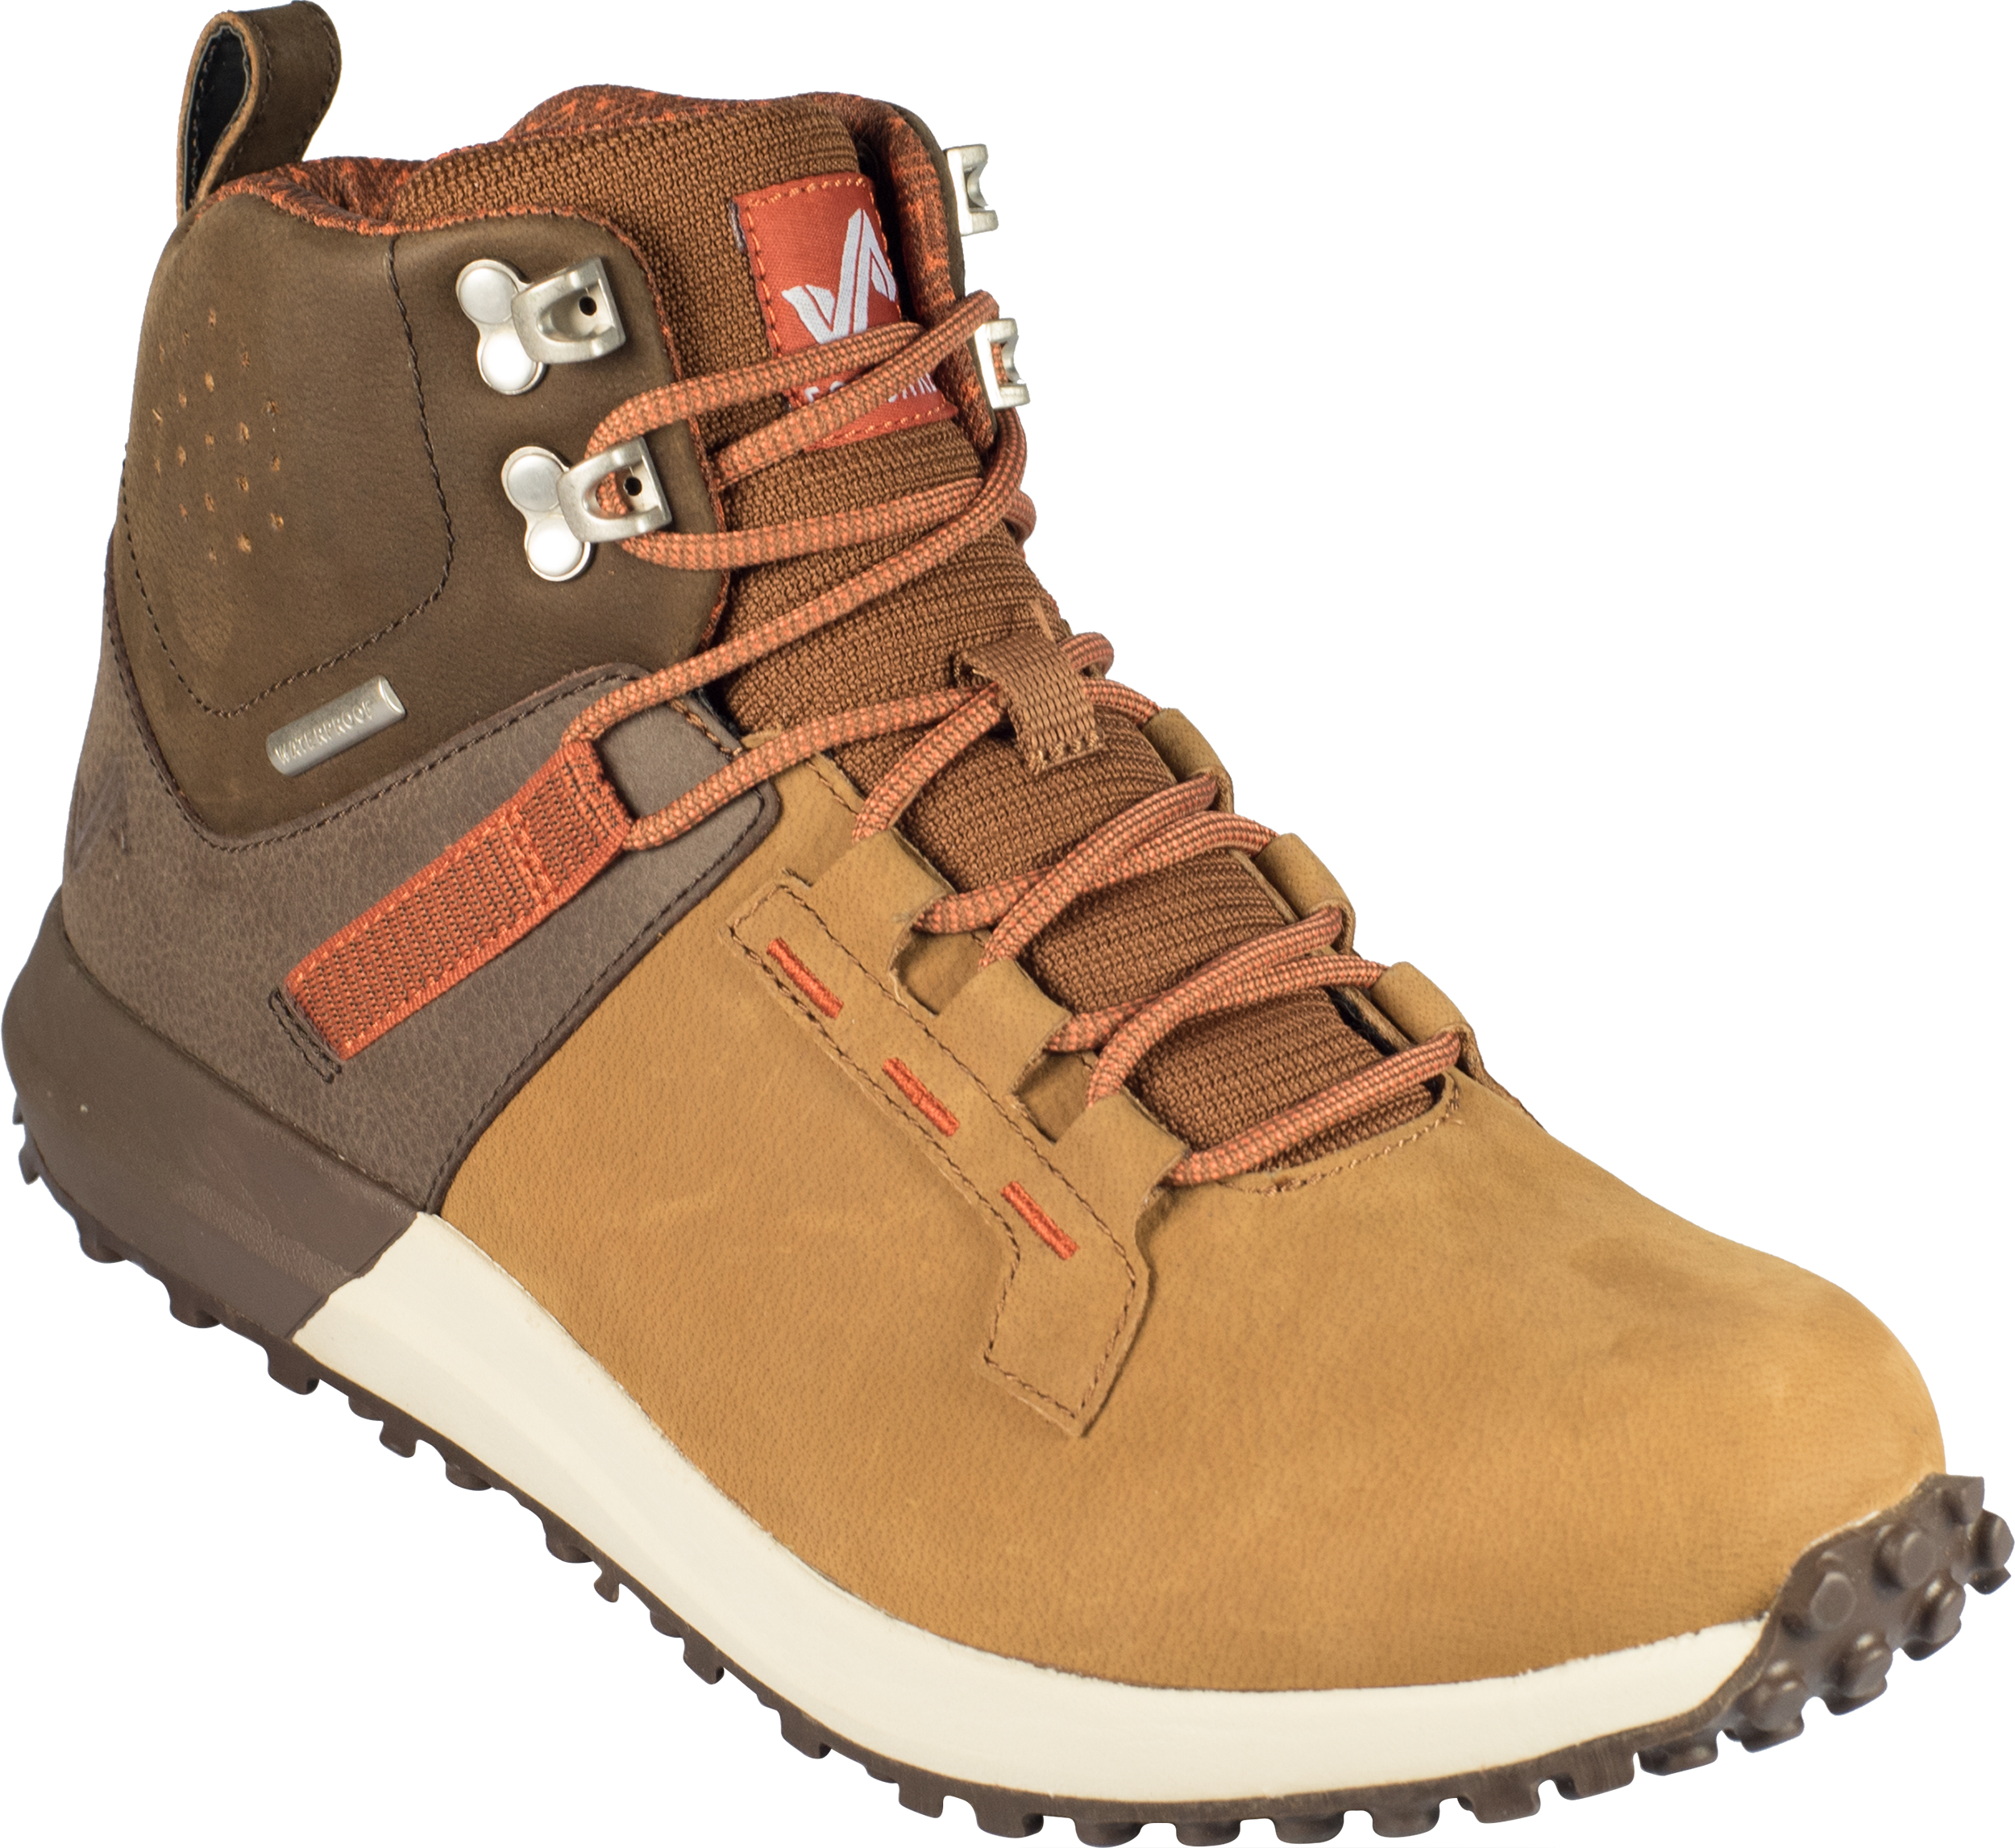 Womens Waterproof Leather Hiking Boot Forsake Range High